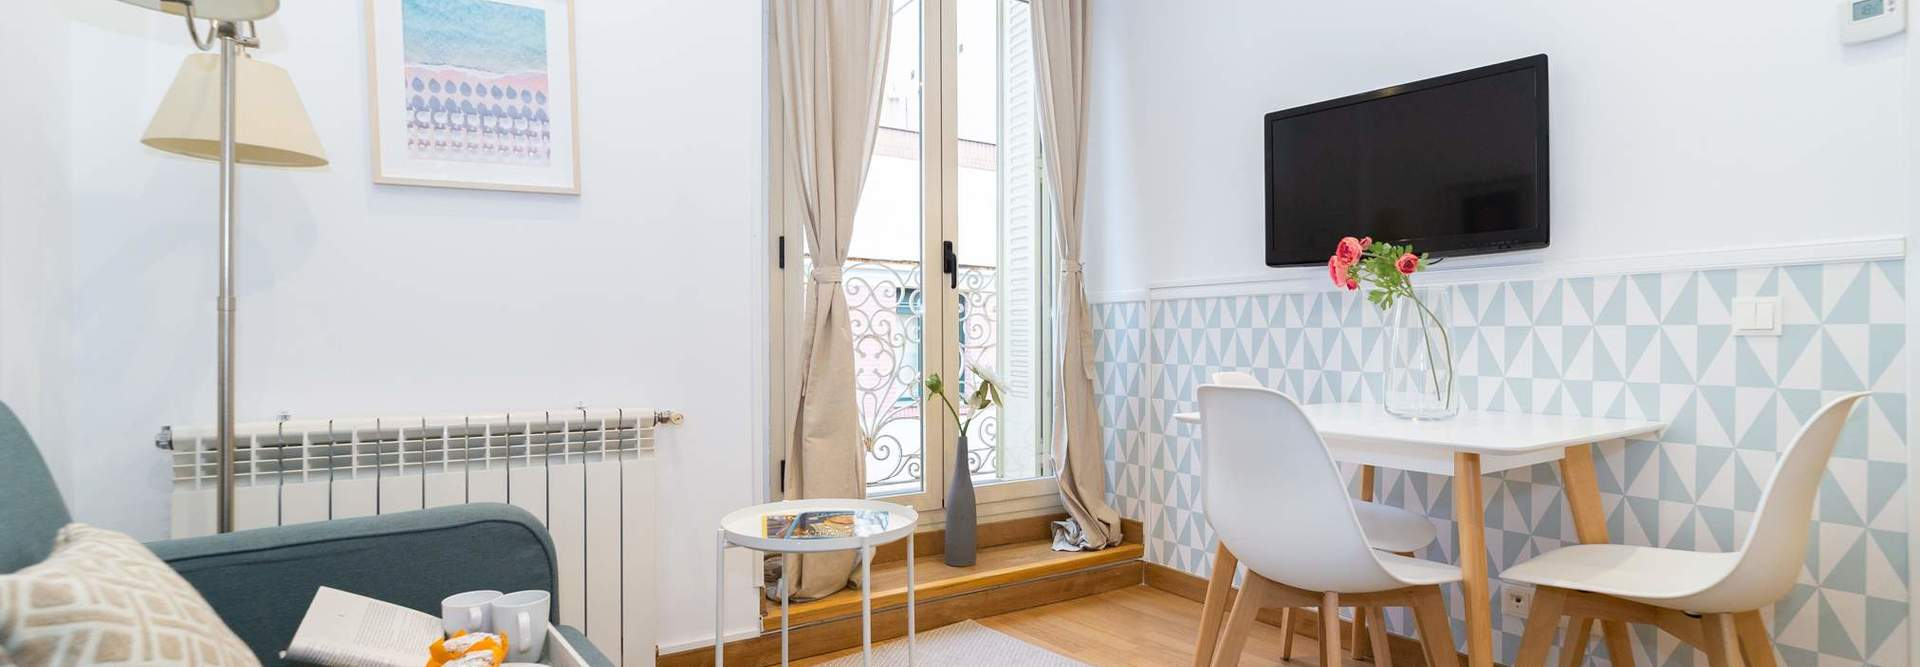 Home alquiler apartamentos madrid mad4rent 22